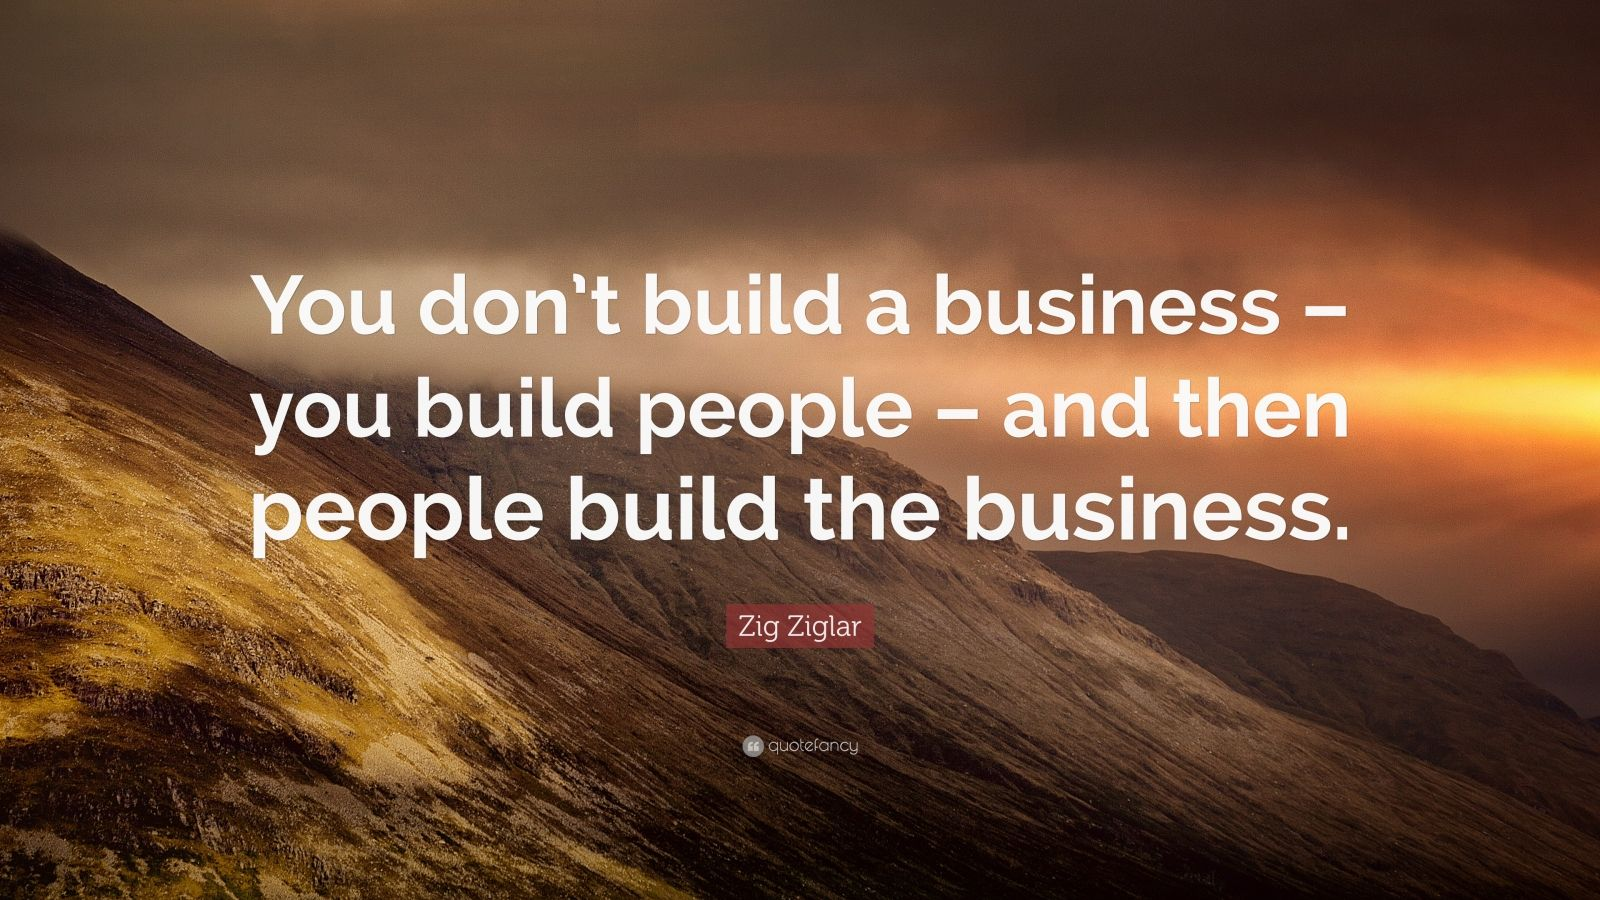 4682712-Zig-Ziglar-Quote-You-don-t-build